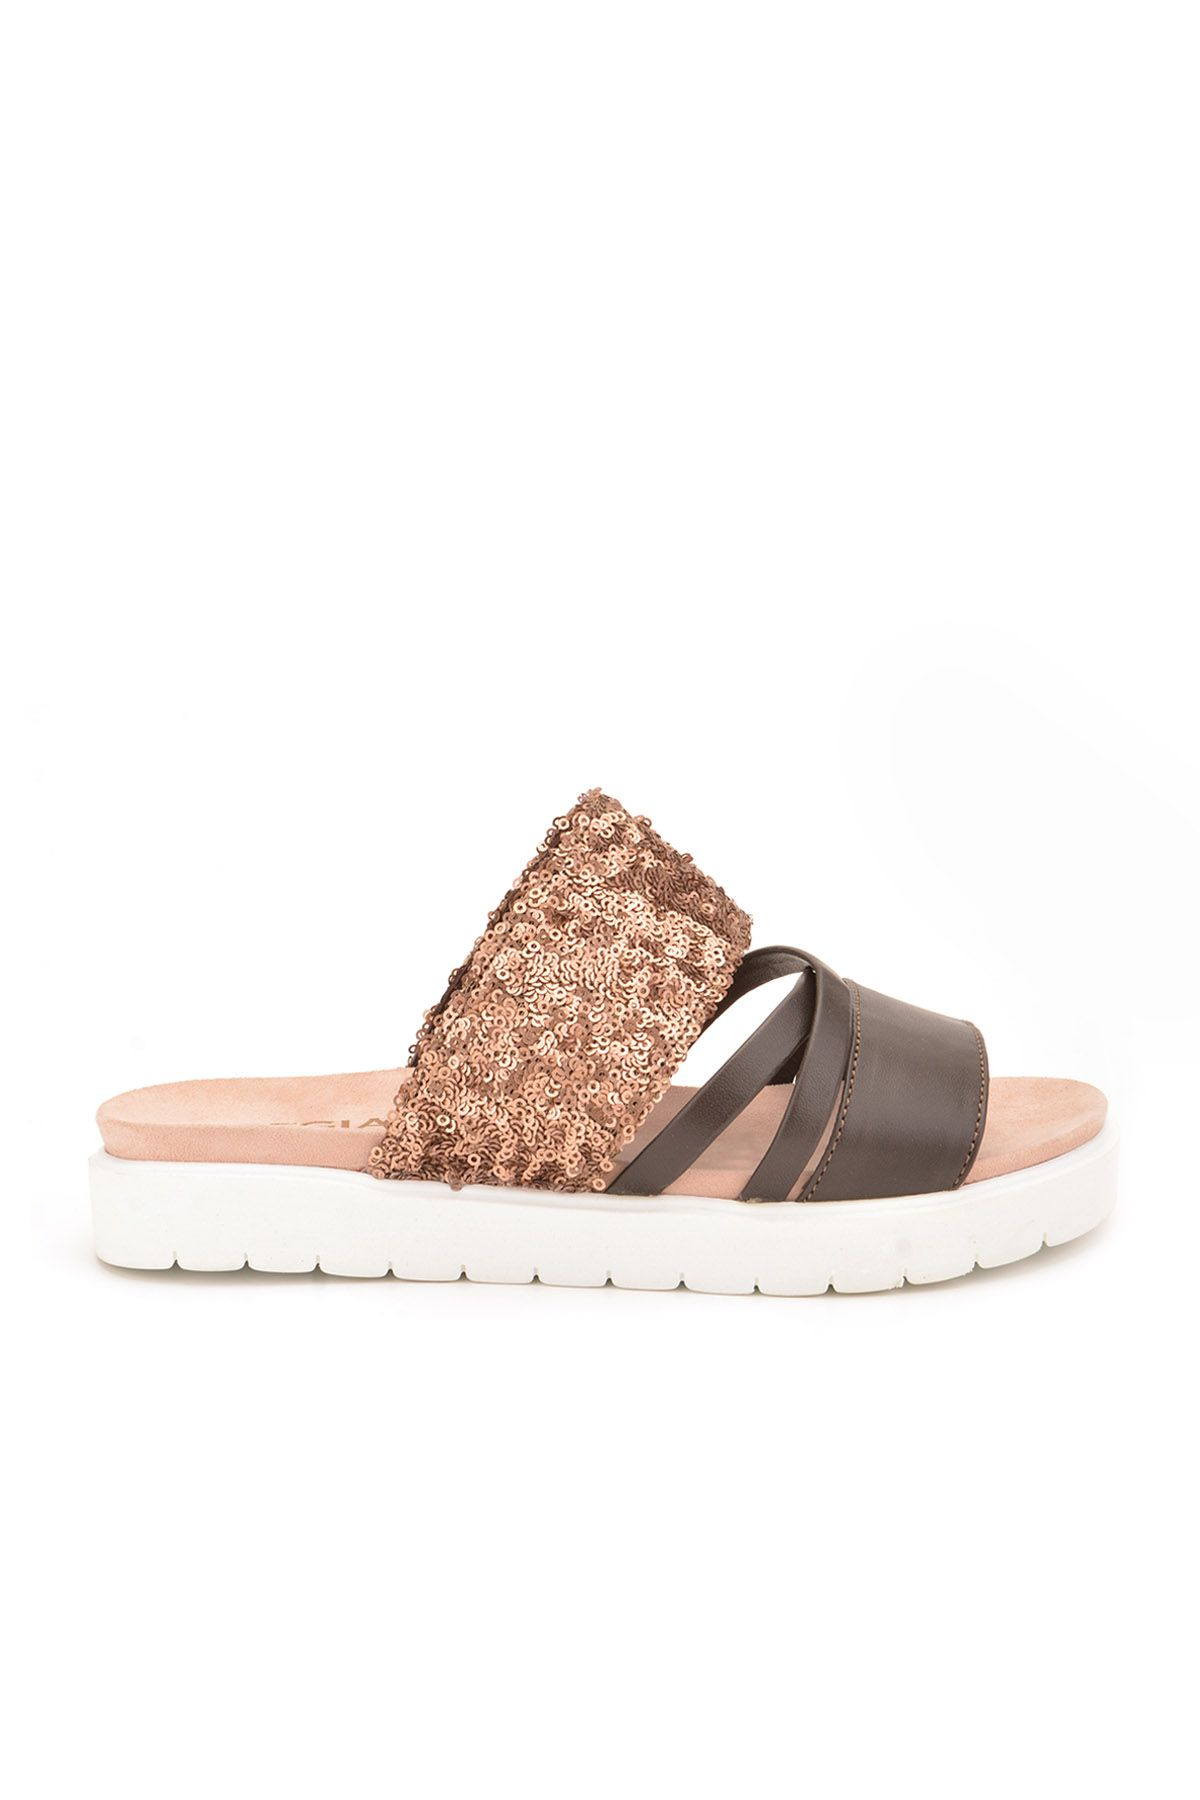 Pegia Alesia Women Slippers From Genuine Leather REC-005 Brown